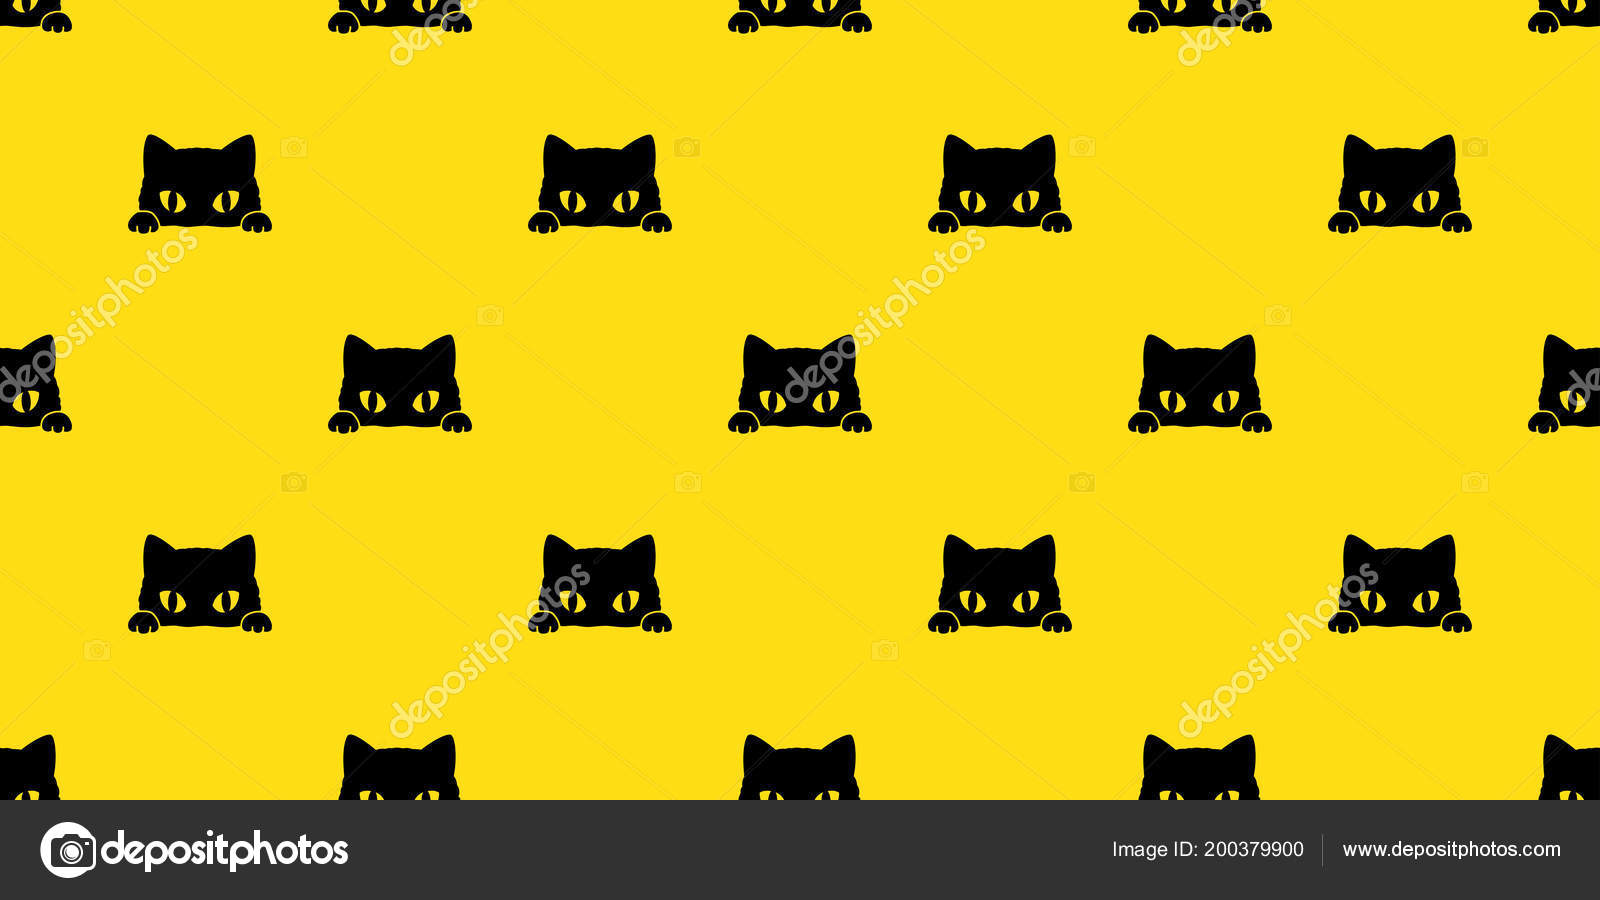 Cat Seamless Pattern Black Cat Vector Isolated Wallpaper Background Yellow Stock Vector C Cnuisin 200379900